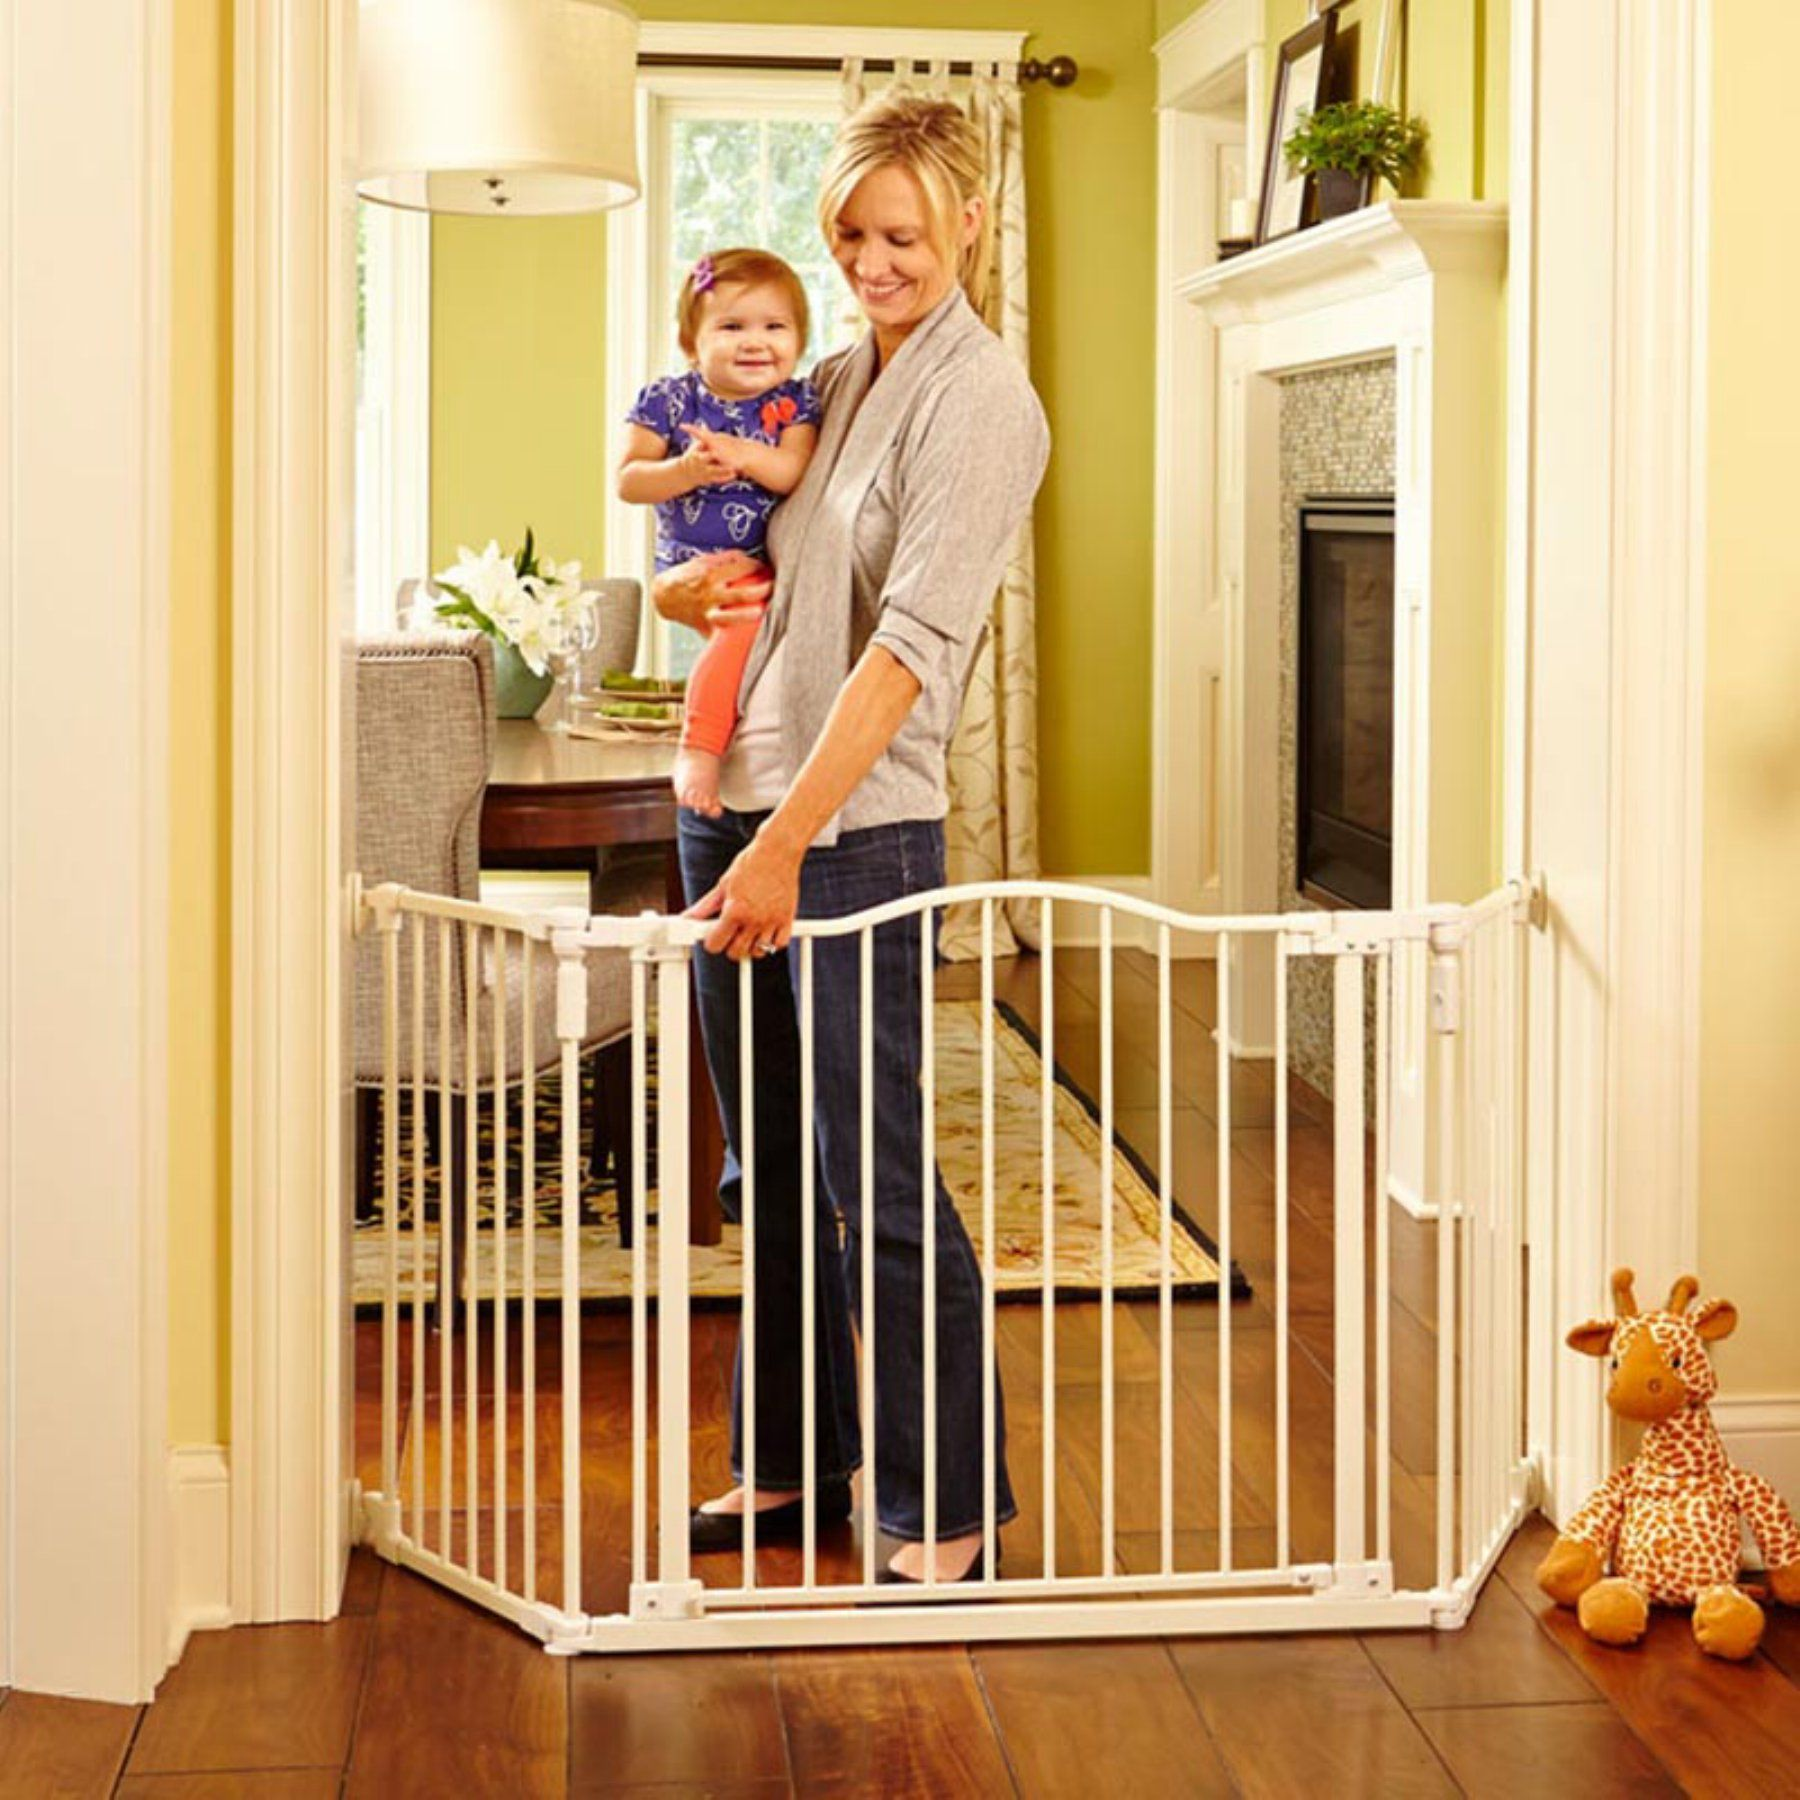 North States Deluxe Decor Gate 4954S Baby gates, Extra